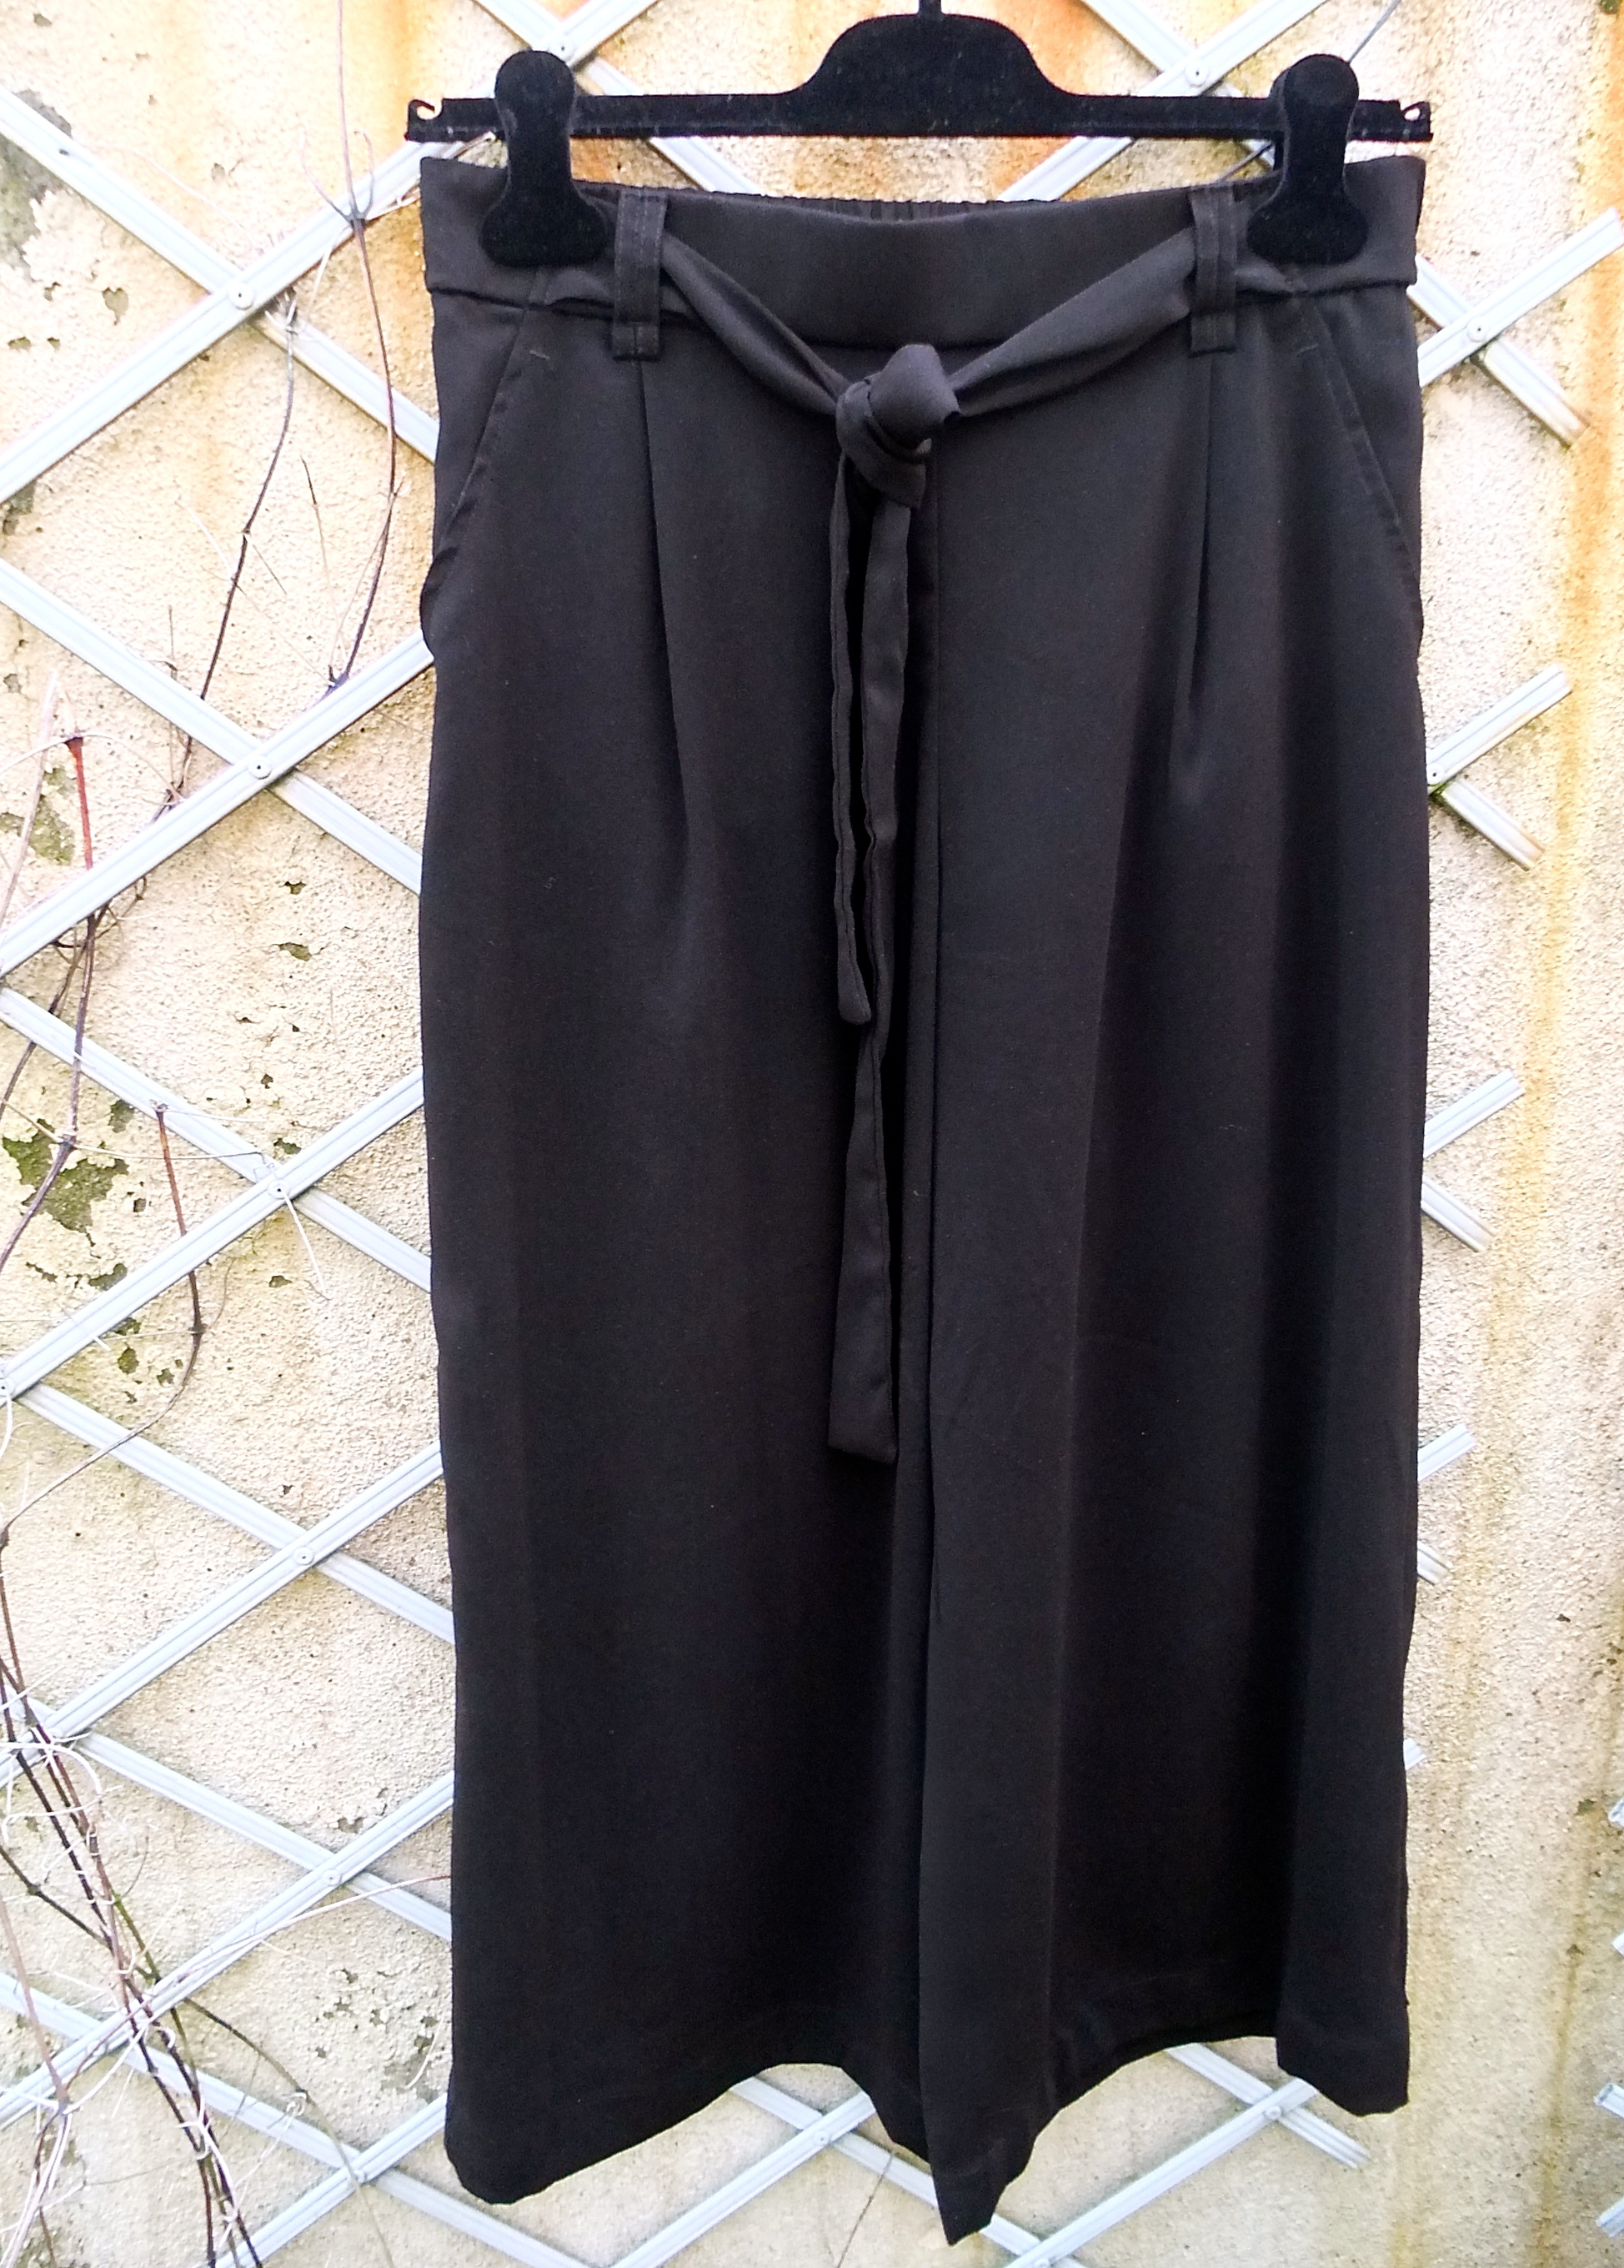 whether itu0027s boots tights socks sneakers heels a cardigan or a shirt these black culottes are the perfect staple for the winter months